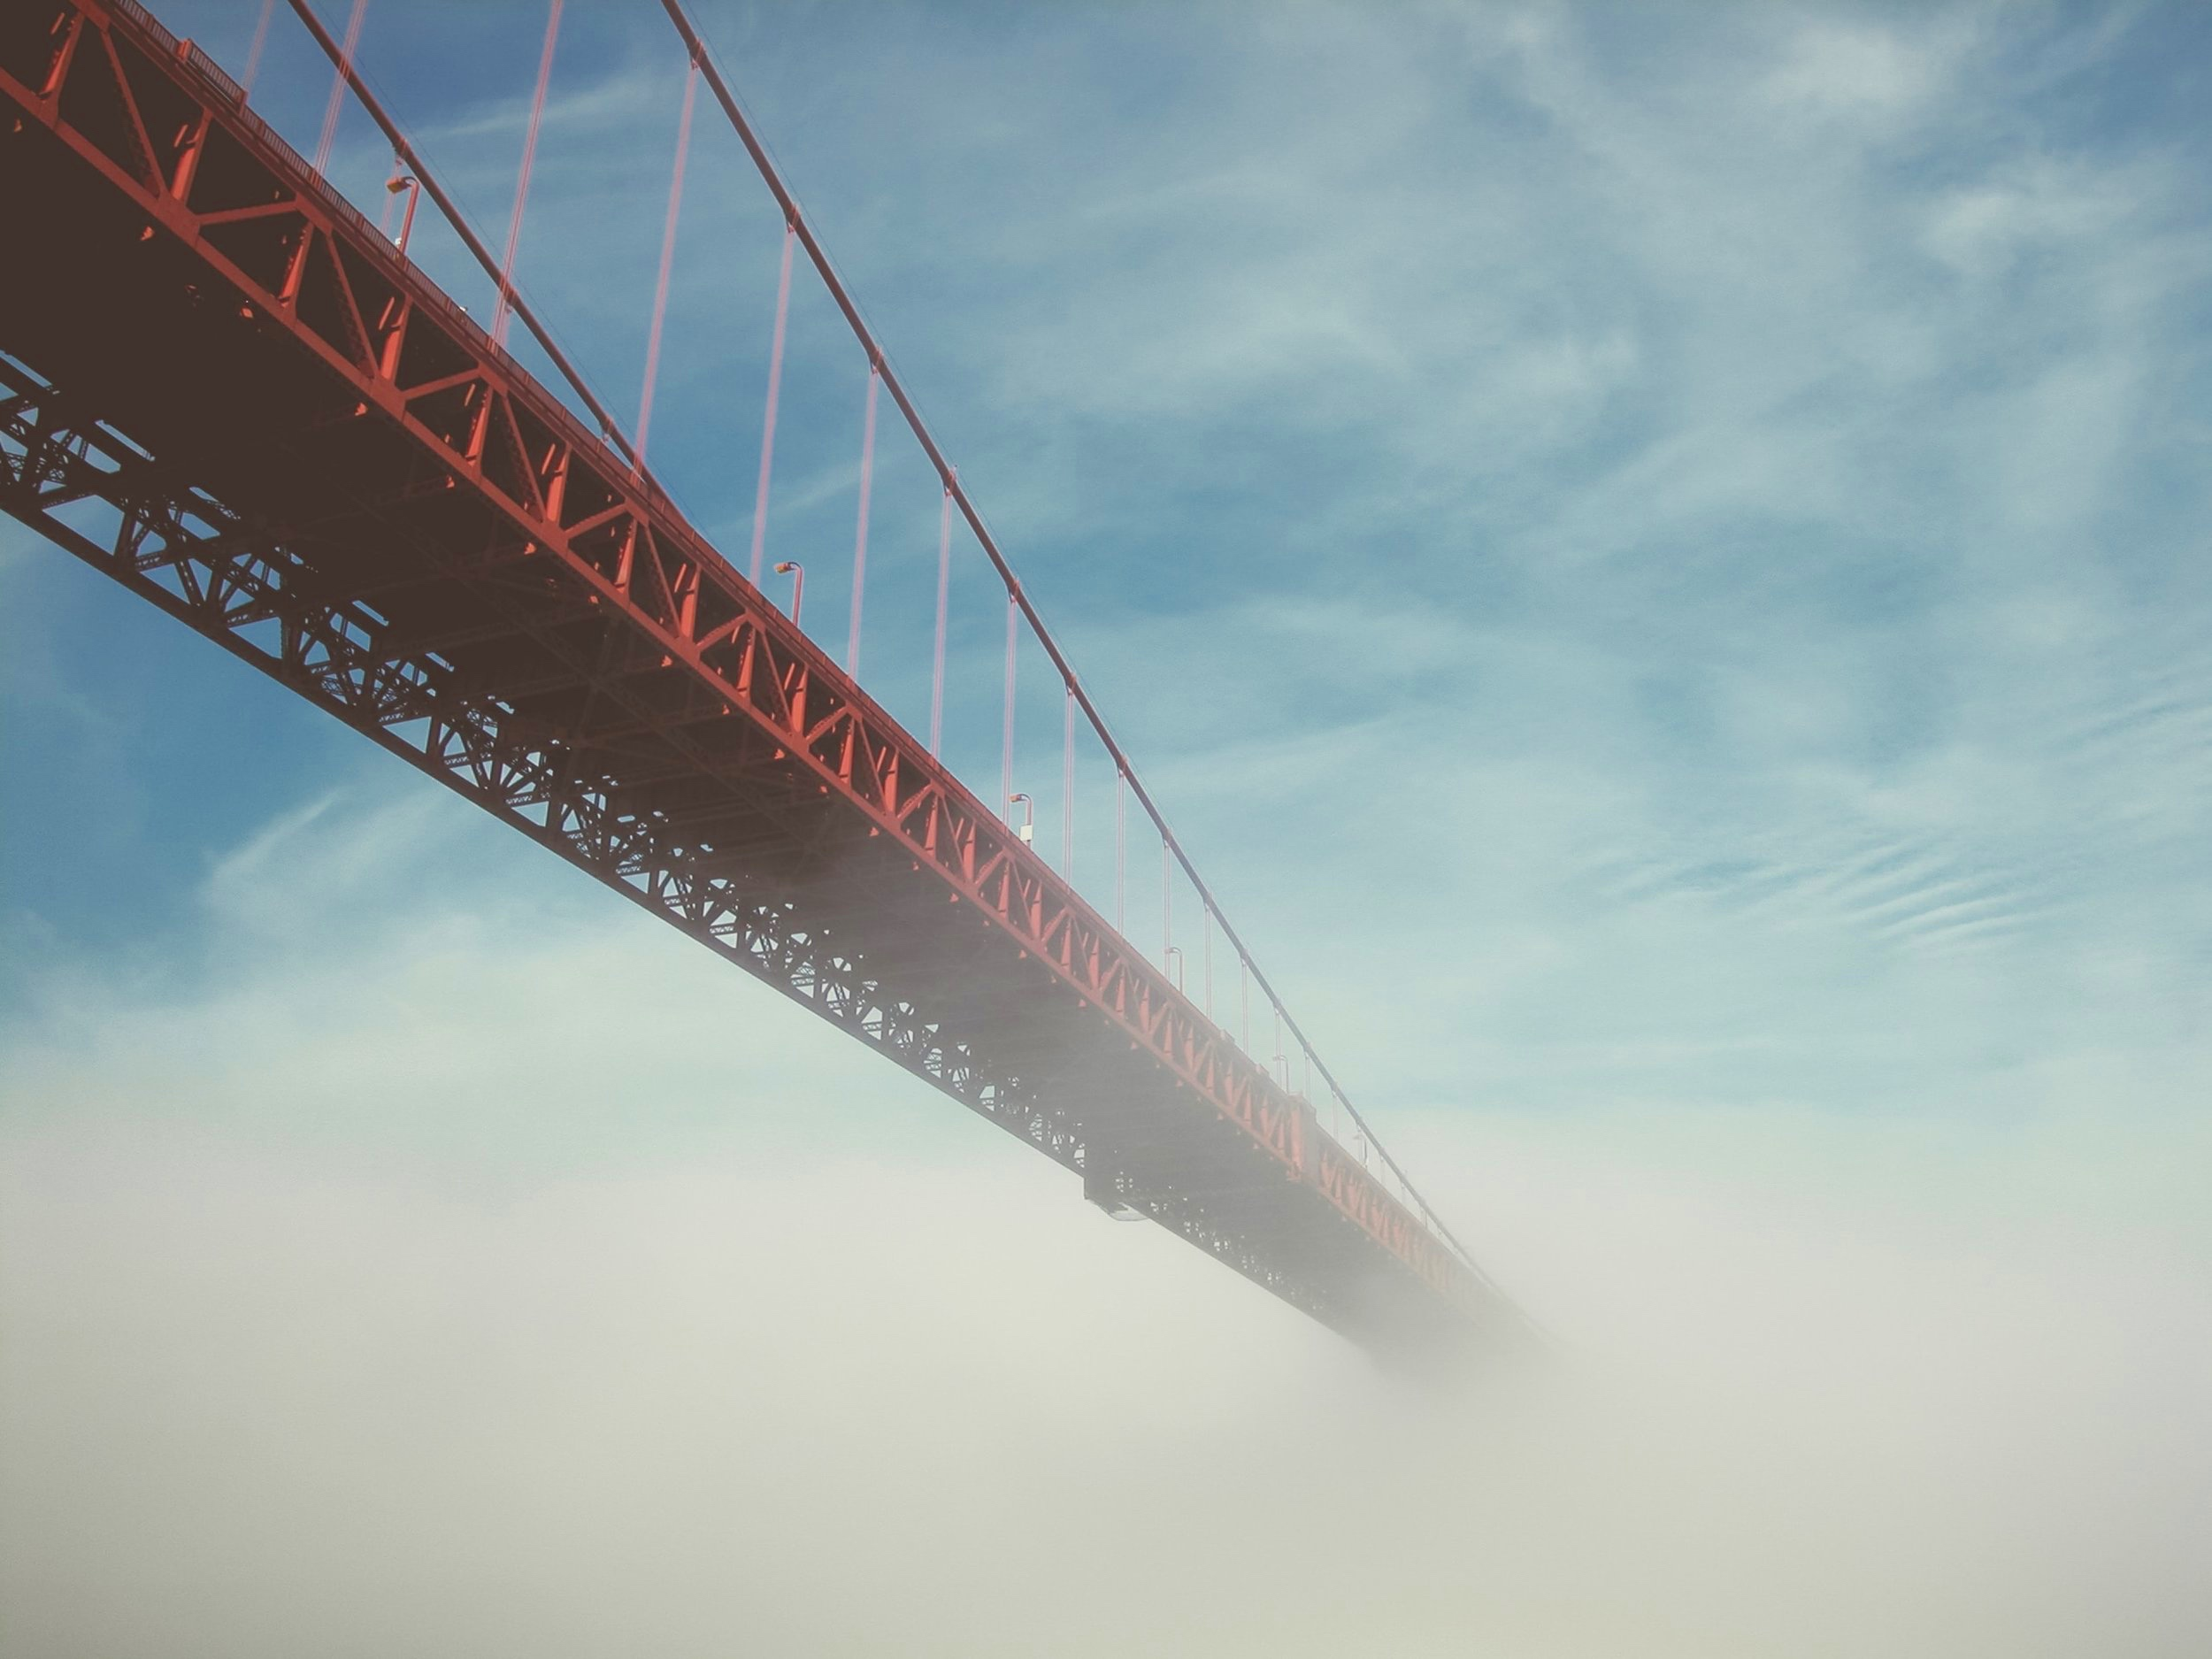 Imagine what may be at the end of this bridge. - Photo by Simon Stratford | Unsplash